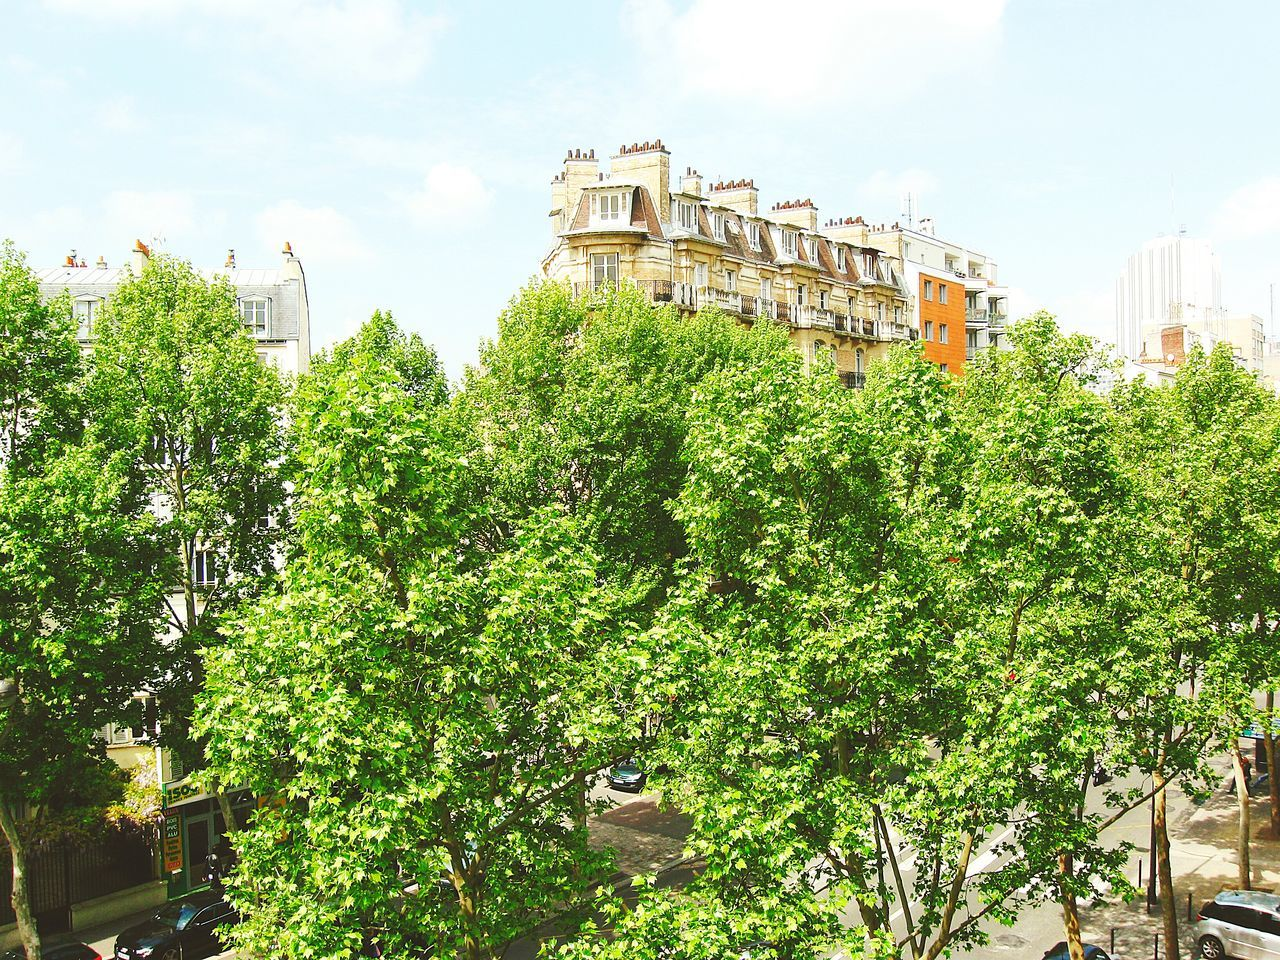 Architecture City Travel Destinations Tree No People History Growth Cloud - Sky Nature Outdoors Day Panoramic Landscape Landscape_photography France Photos Parispics Paris, France  Architecture Cityscape Paris, France  Street Montparnasse Streetphotography Street Stretphotography Parisweloveyou